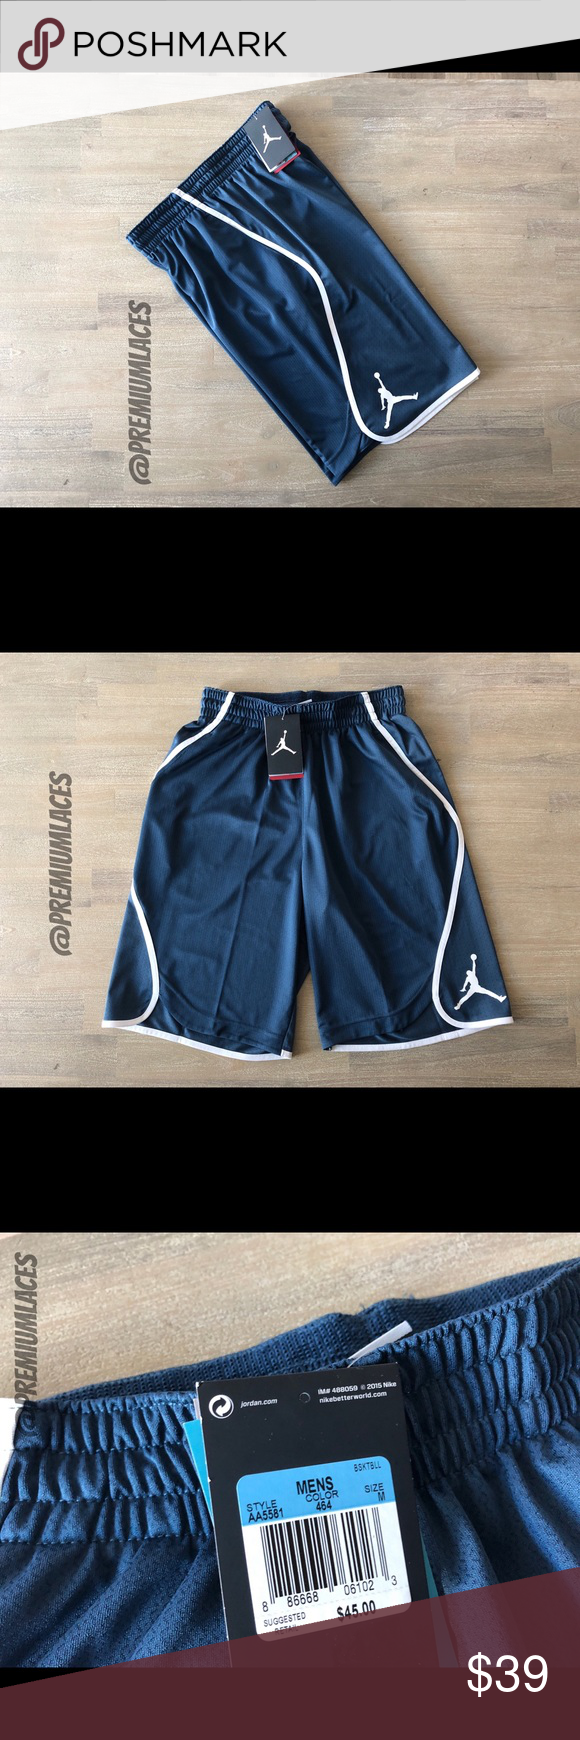 5e4161ff353ba1 AIR JORDAN FLIGHT VICTORY BASKETBALL SHORTS 🔘 Brand new with tags! 🔘 All  inventory is